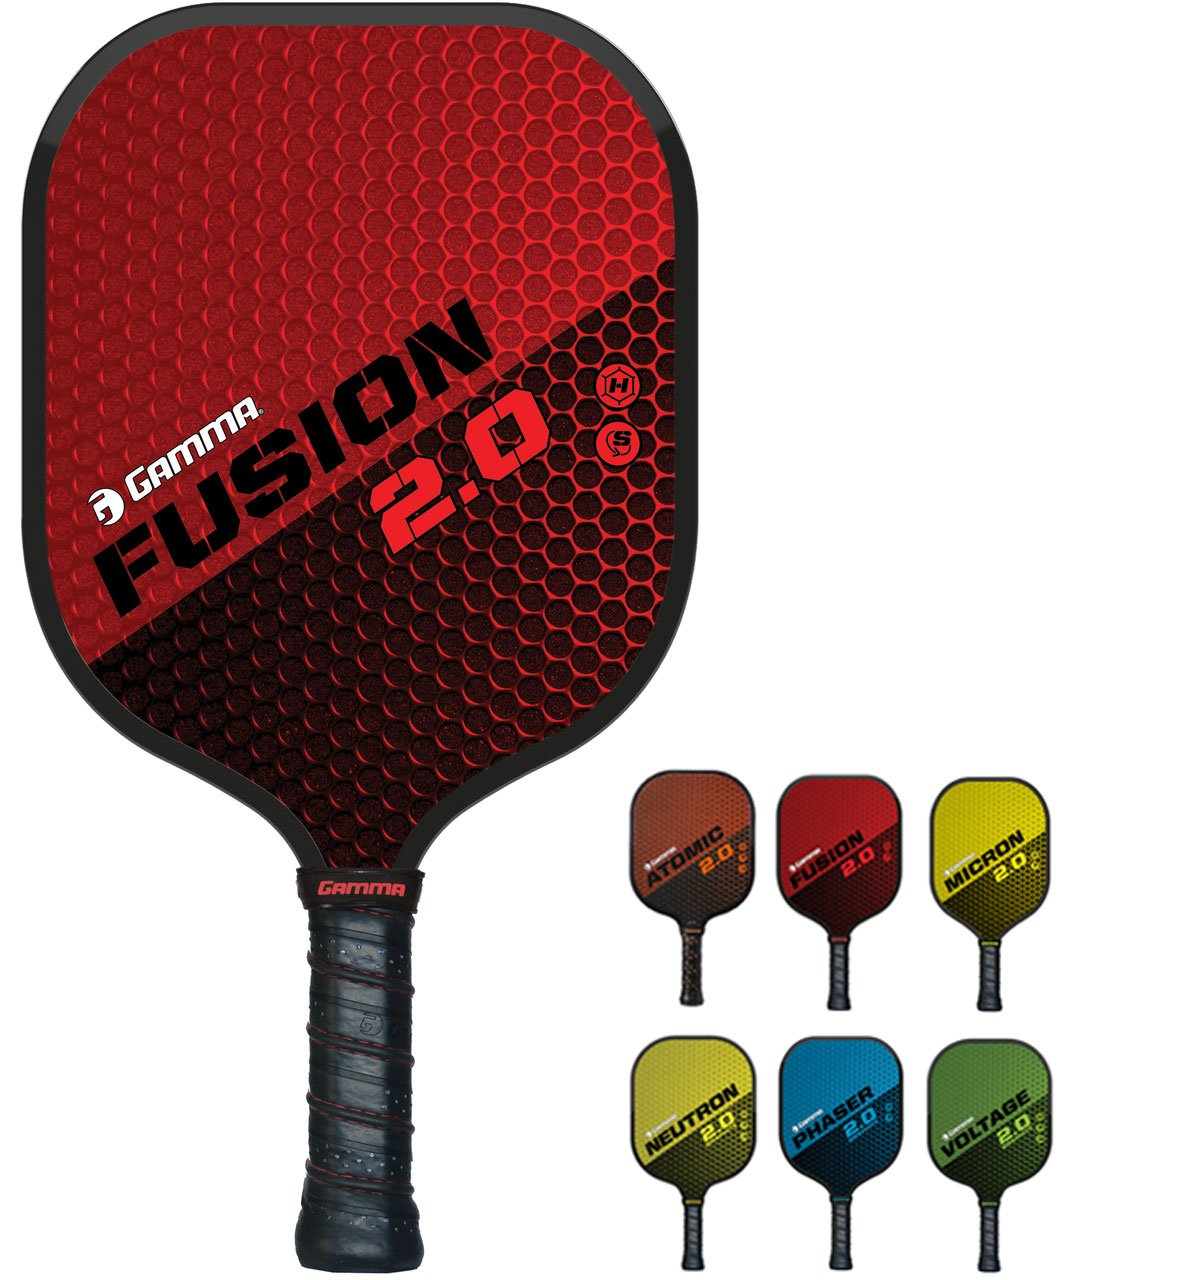 GAMMA Sports 2.0 Pickleball Paddles: Fusion 2.0 Pickleball Rackets - Textured Fiberglass Face - Mens and Womens Pickle Ball Racquet - Indoor and Outdoor Racket - Red Pickle-Ball Paddle - 8 oz